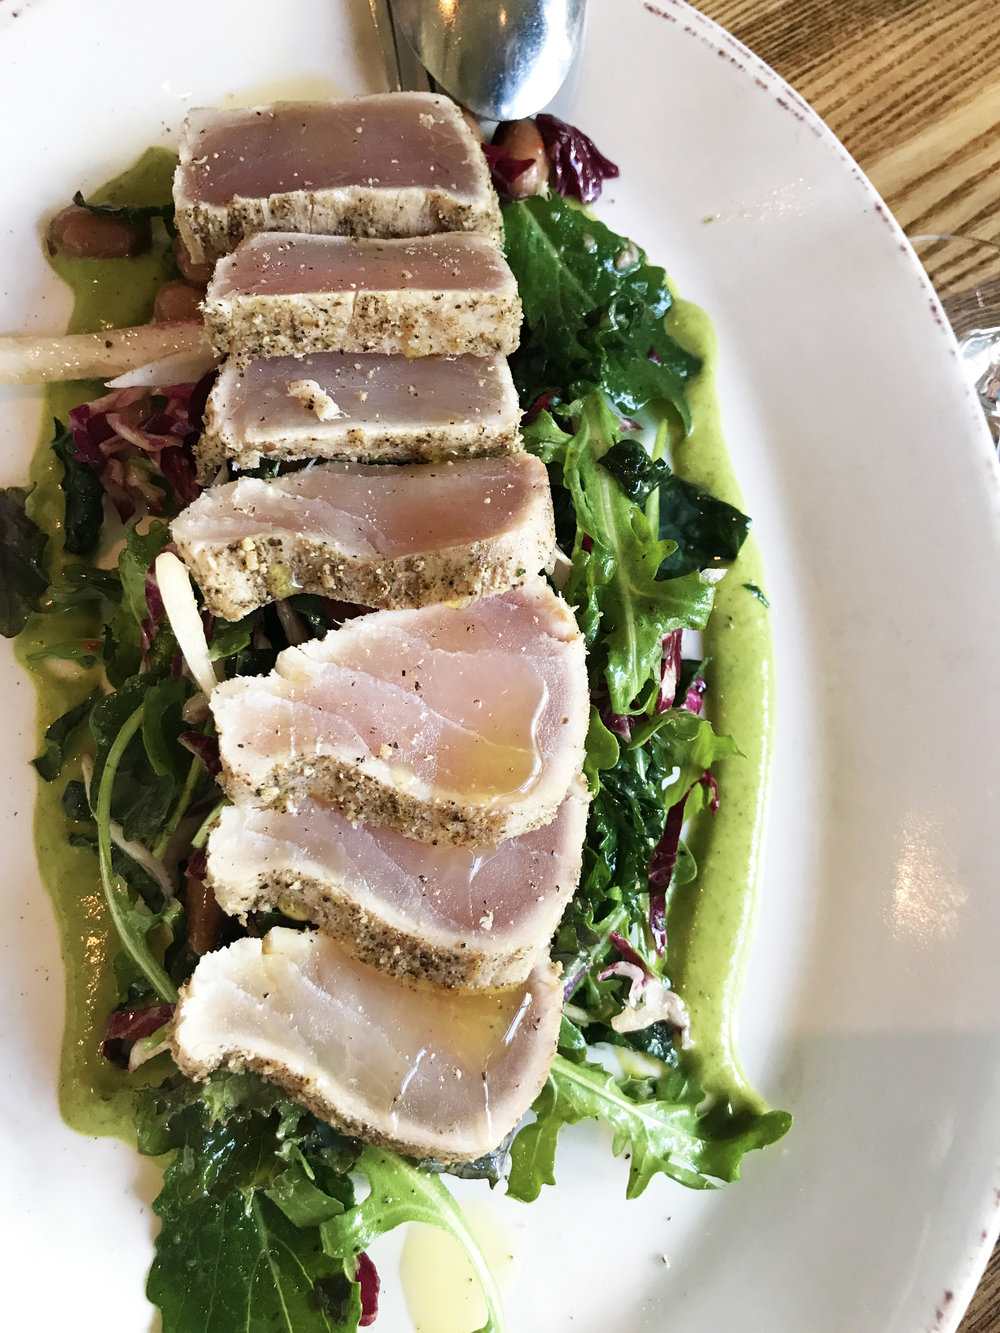 Tonnetto - seared albacore tuna, arugula, radicchio, marinated borlotti beans, green garlic coulis